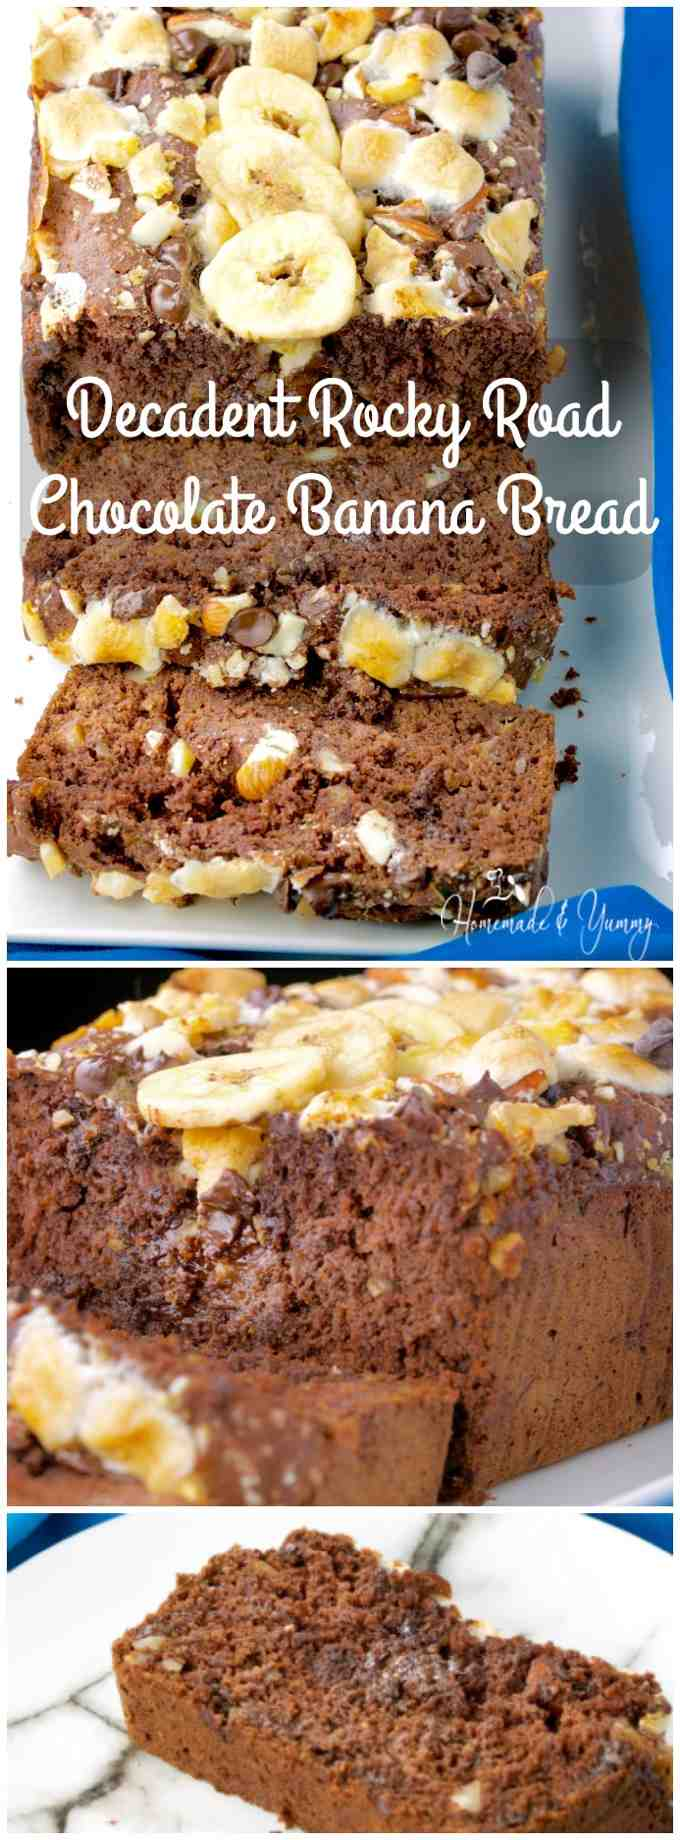 Decadent Rocky Road Chocolate Banana Bread long pin image.